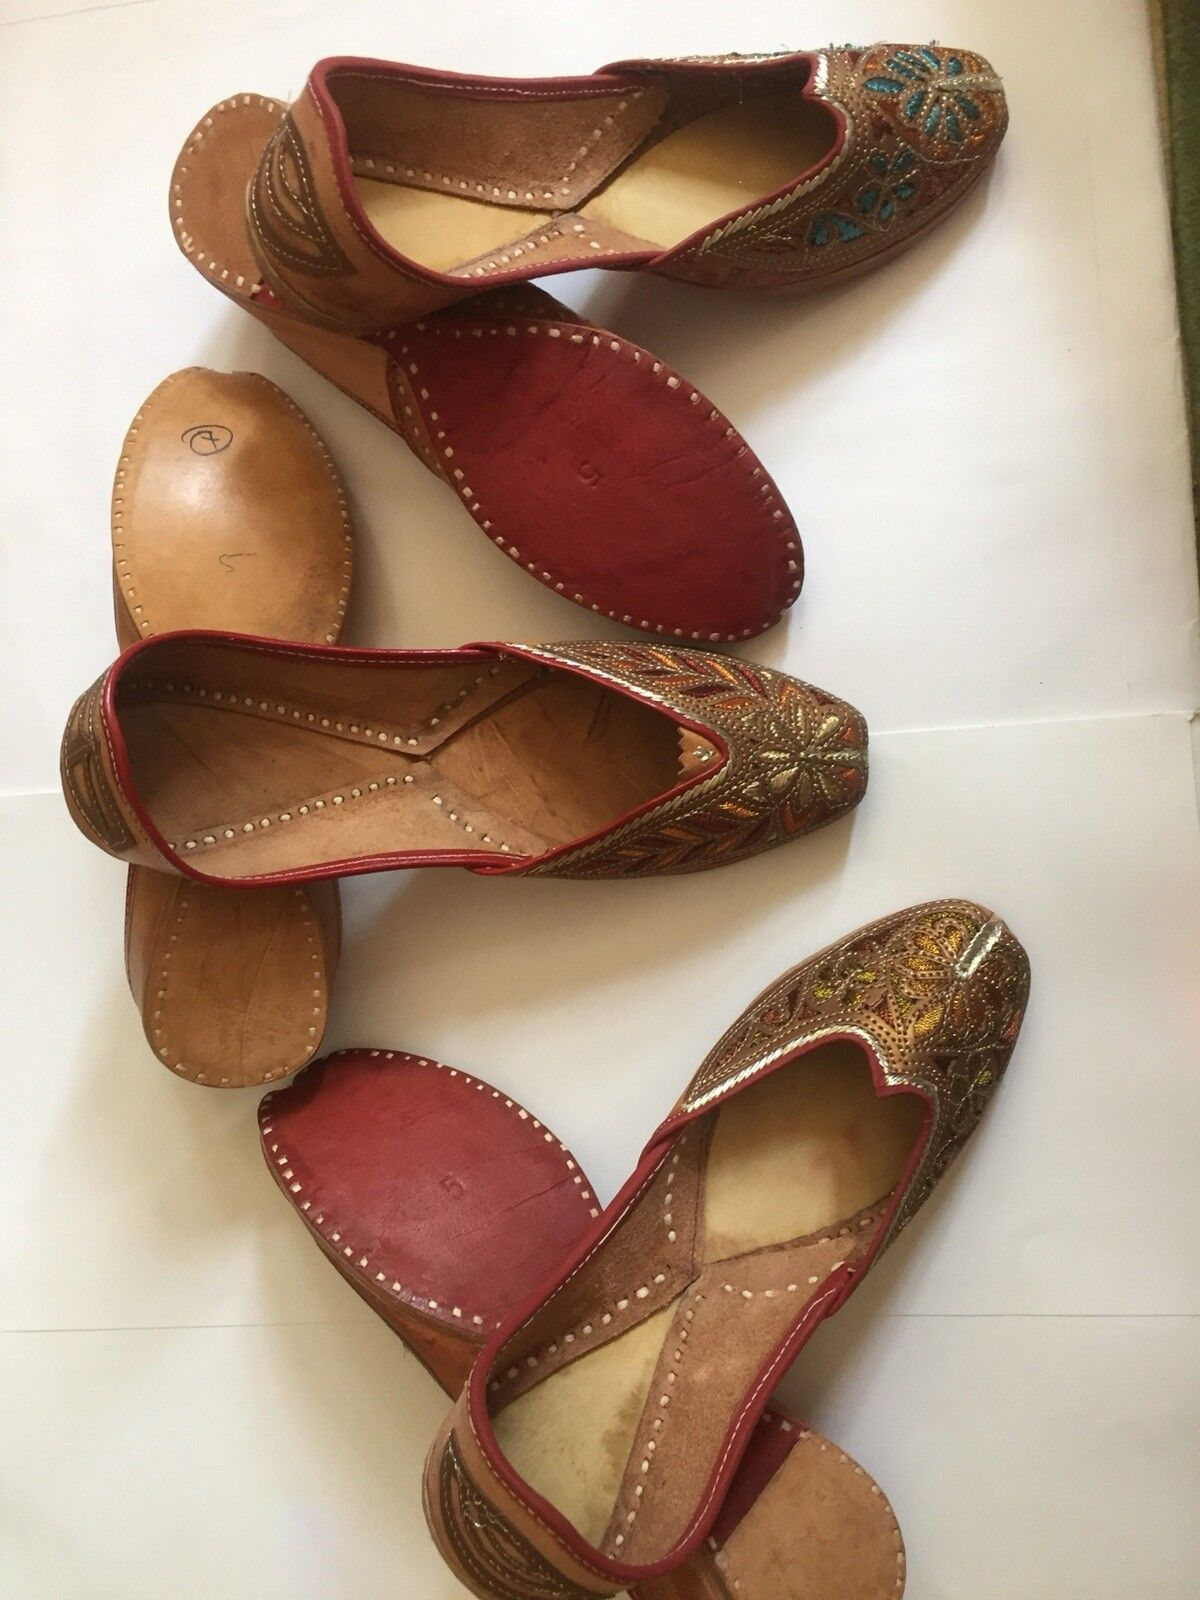 Ladies Soles Handmade Beach Flats Leather Soles Ladies 5 ,5.5 c4938f